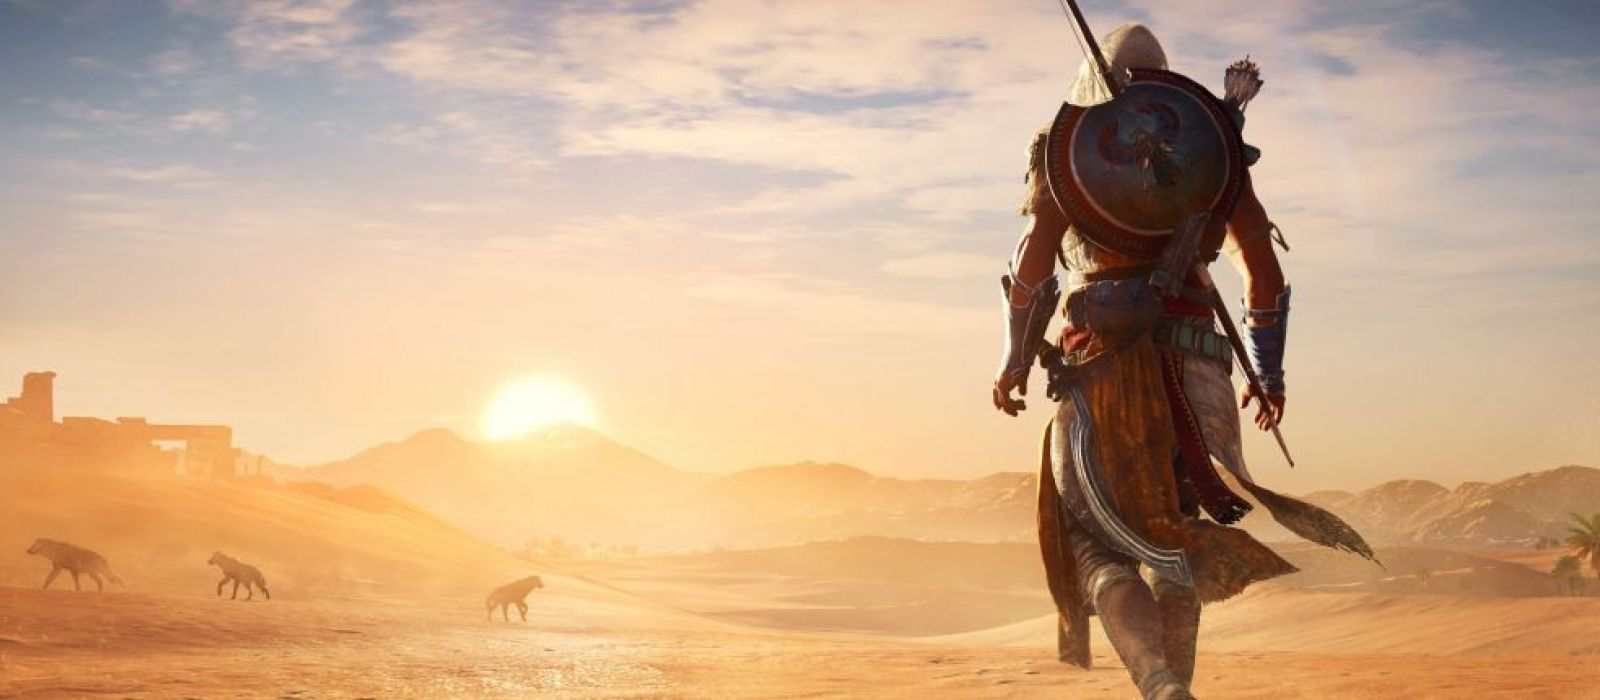 Орден Древних вышел из тени в новом трейлере Assassin's Creed Origins